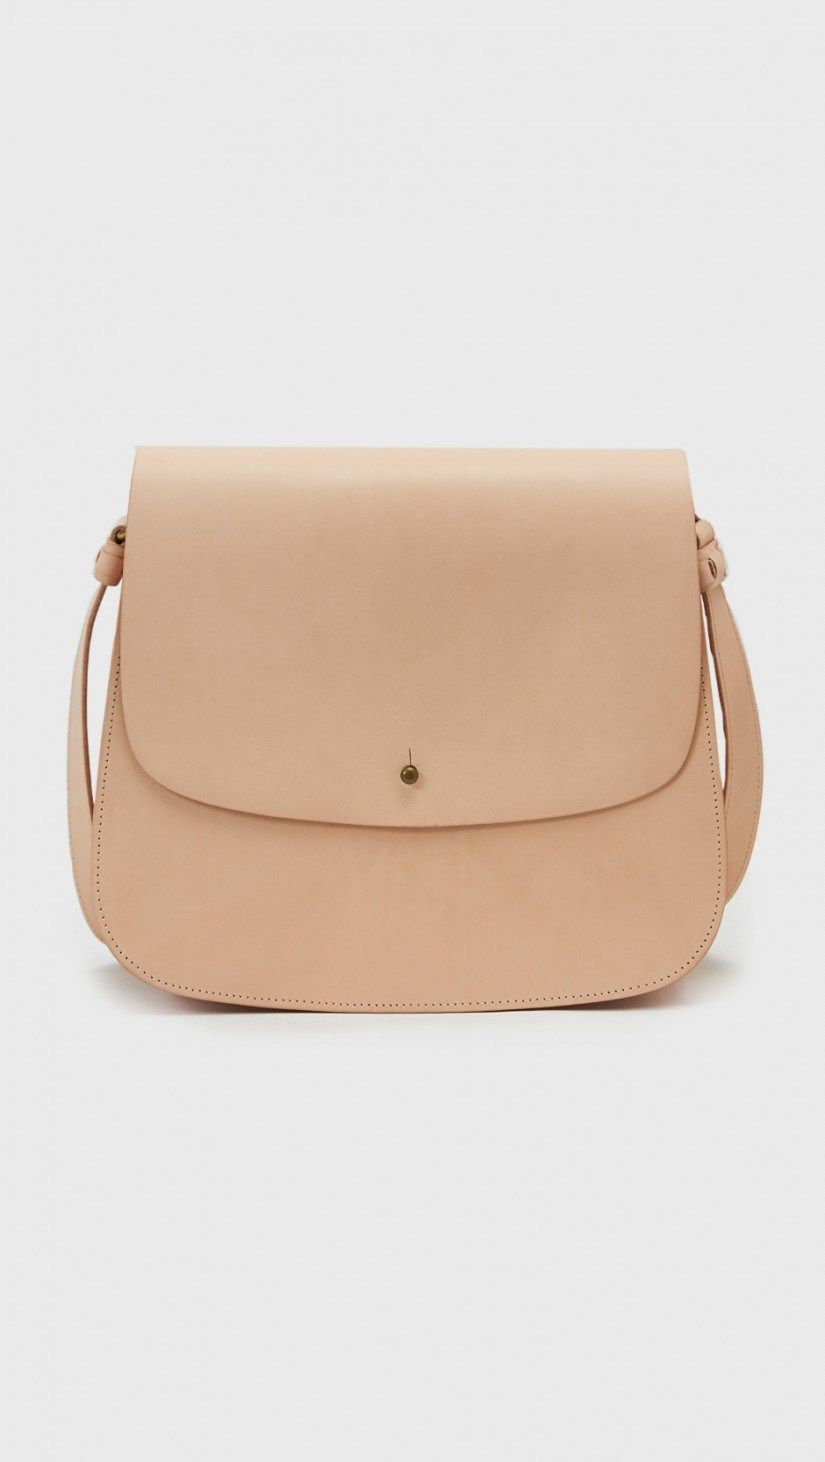 17 Minimalist Bags We Can't Wait to Get Our Handson